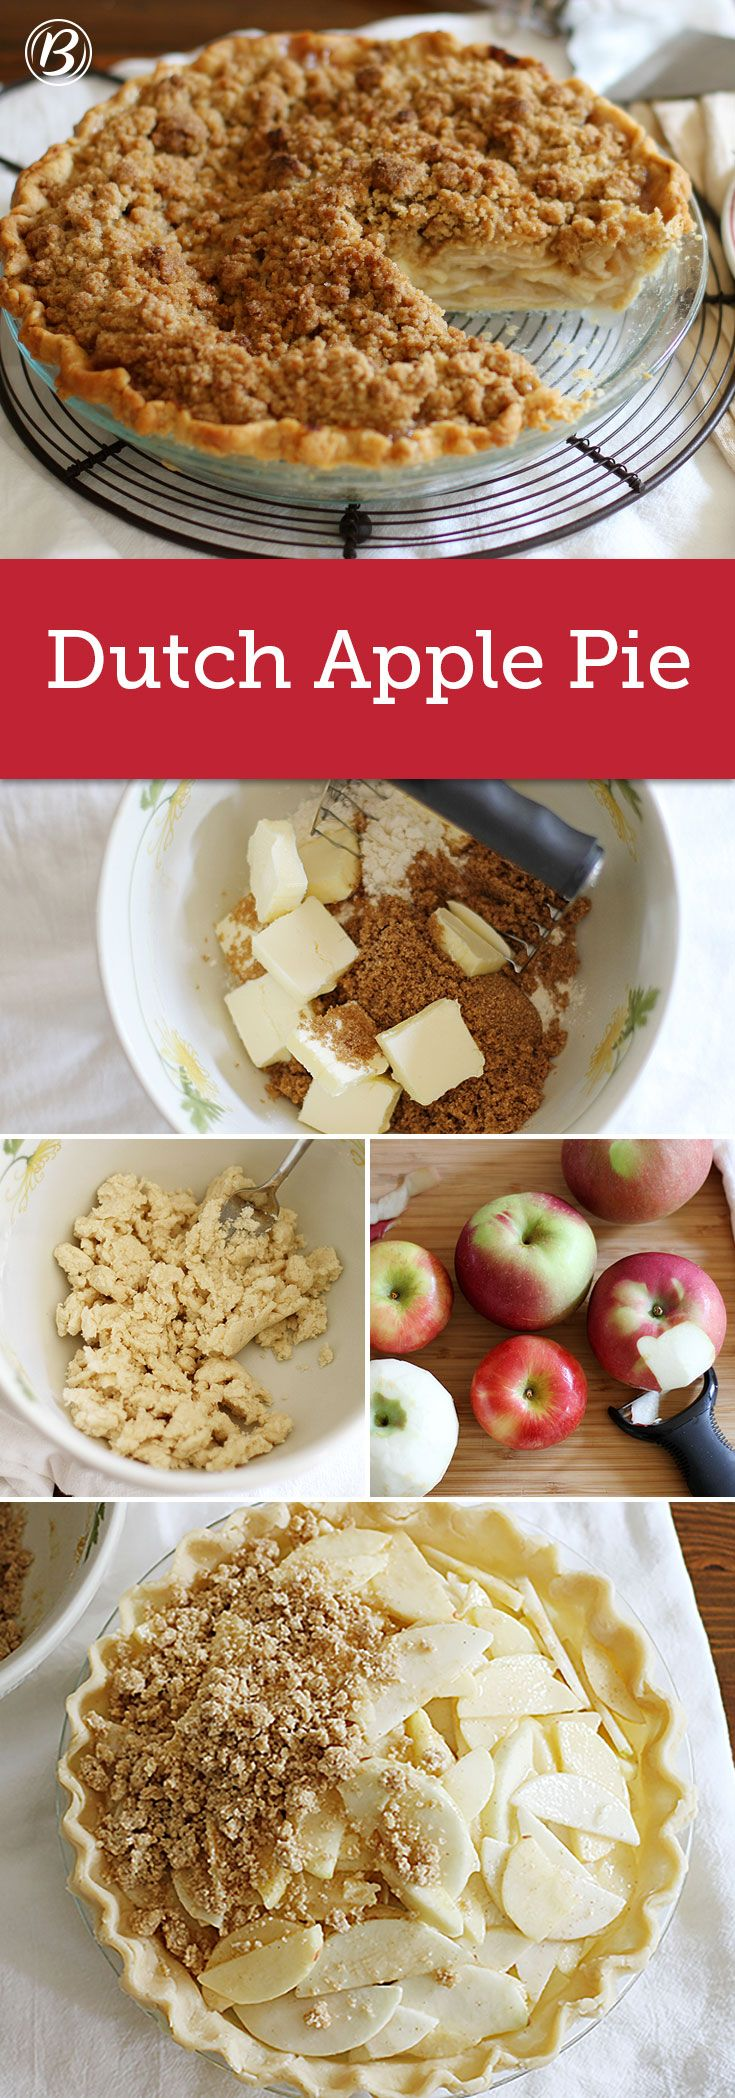 Celebrate apple season and bake up this classic crumble-topped apple pie today. Planning ahead for Thanksgiving? This pie will keep frozen, wrapped in plastic wrap and then again in foil, for up to 3  (Favorite Desserts Mom) #applepie